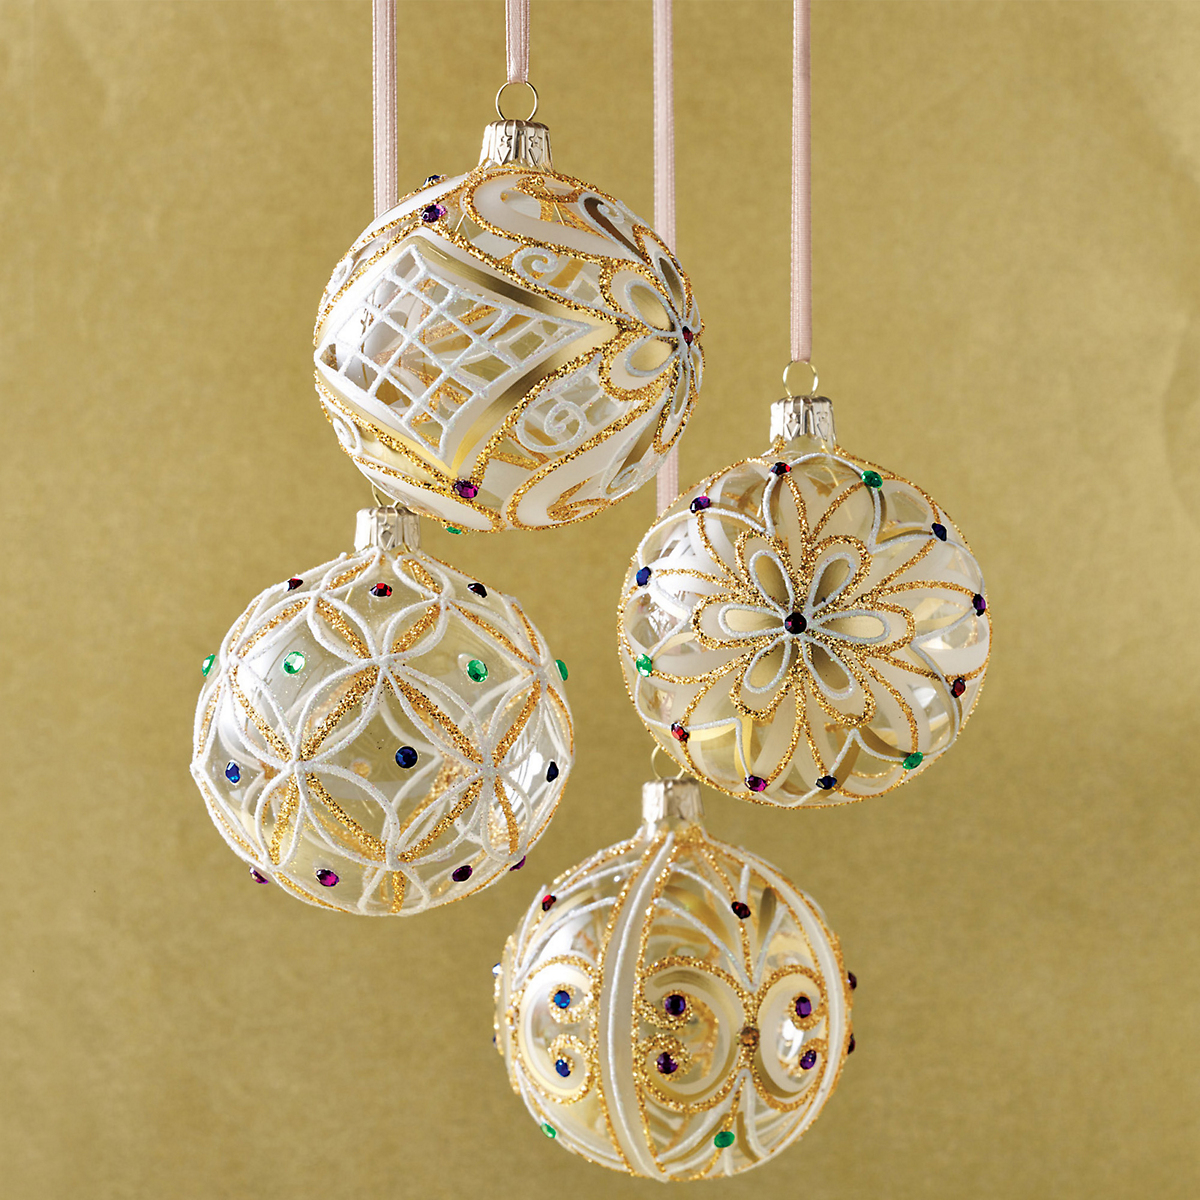 Jeweled Ball Ornaments, Set Of 4